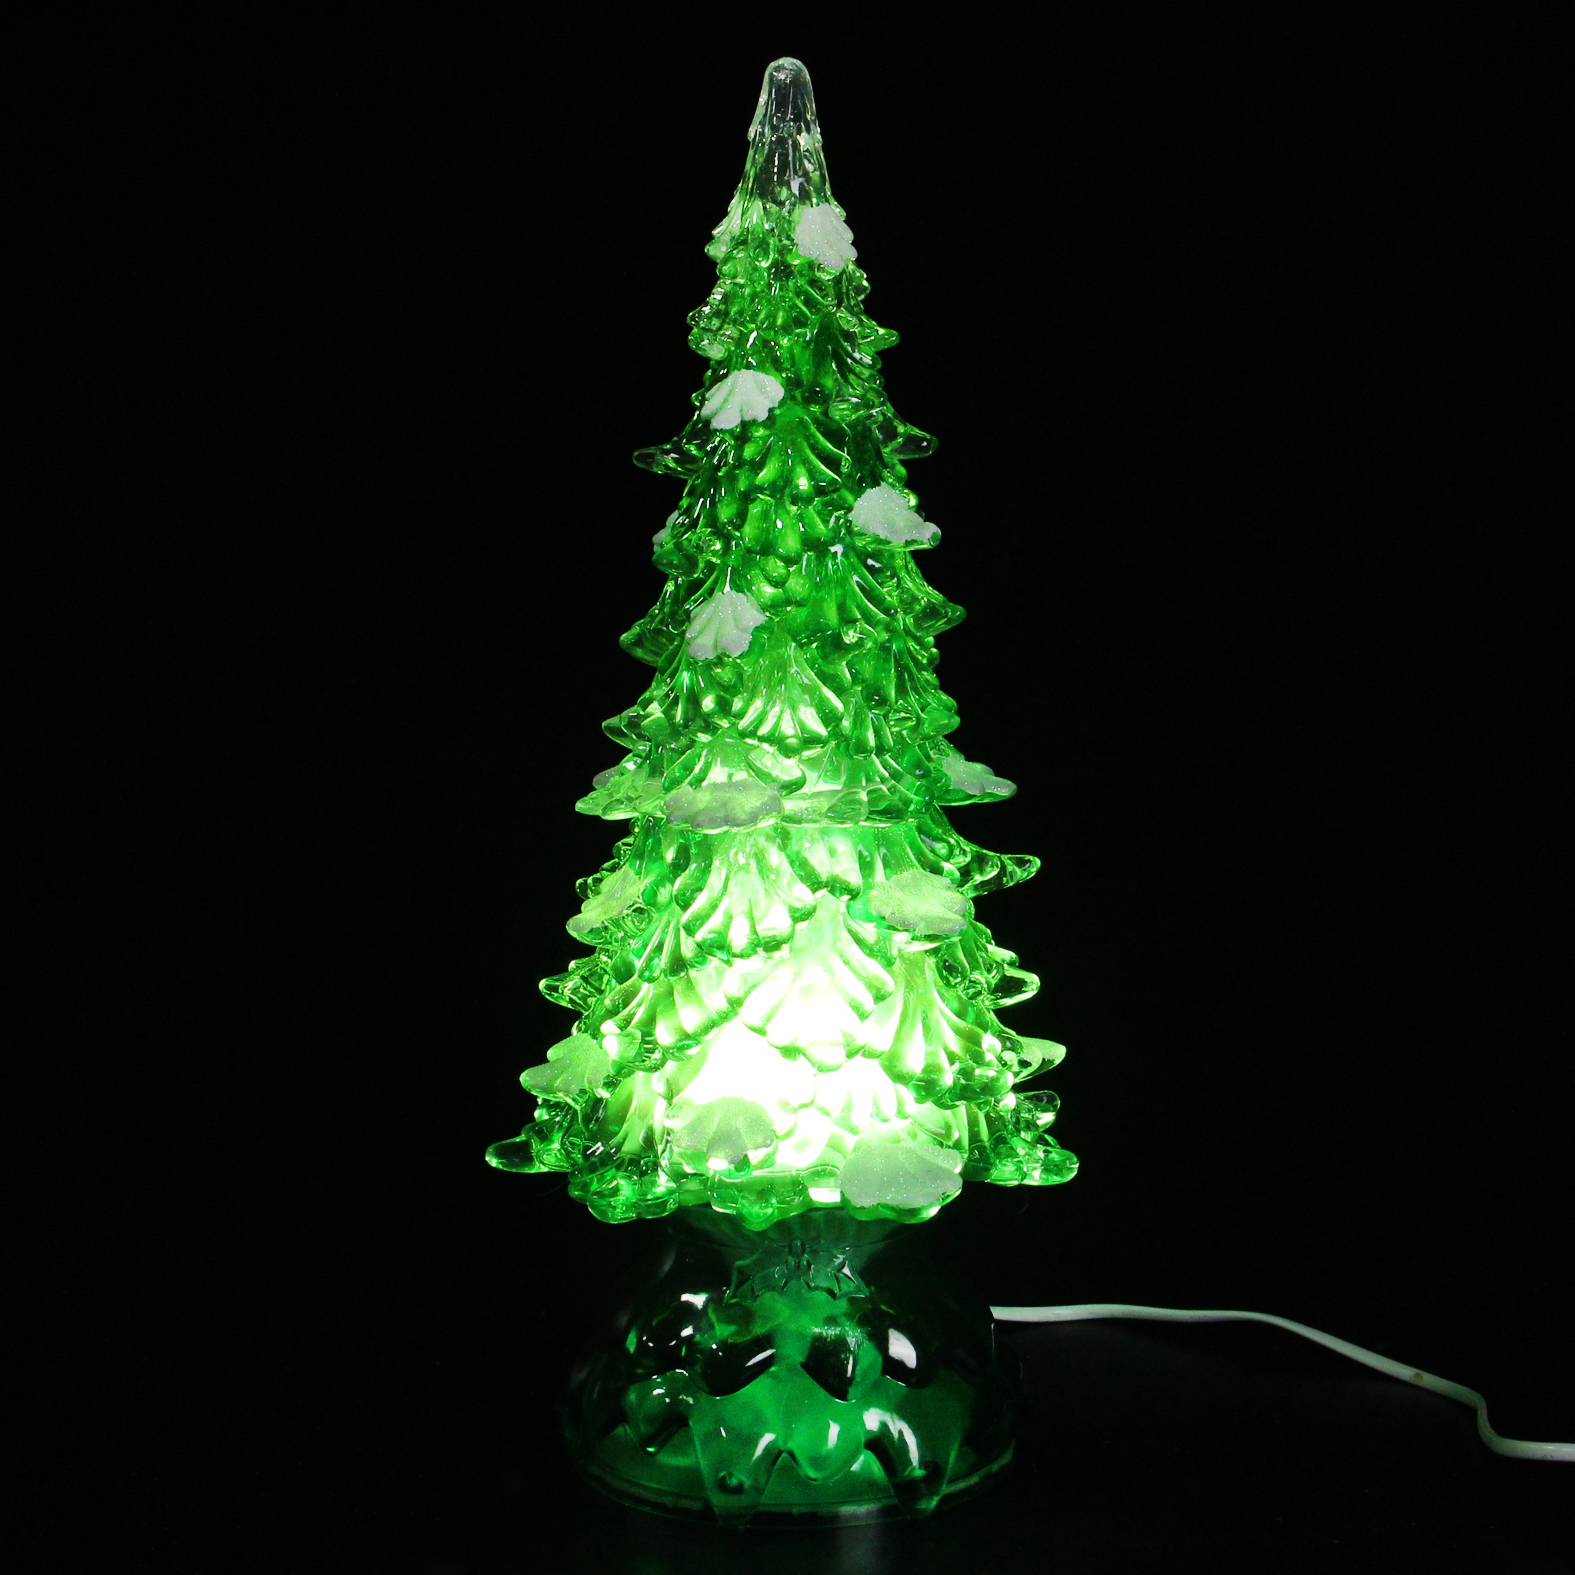 battery holder acrylic christmas light cristmas <strong>decoration</strong>